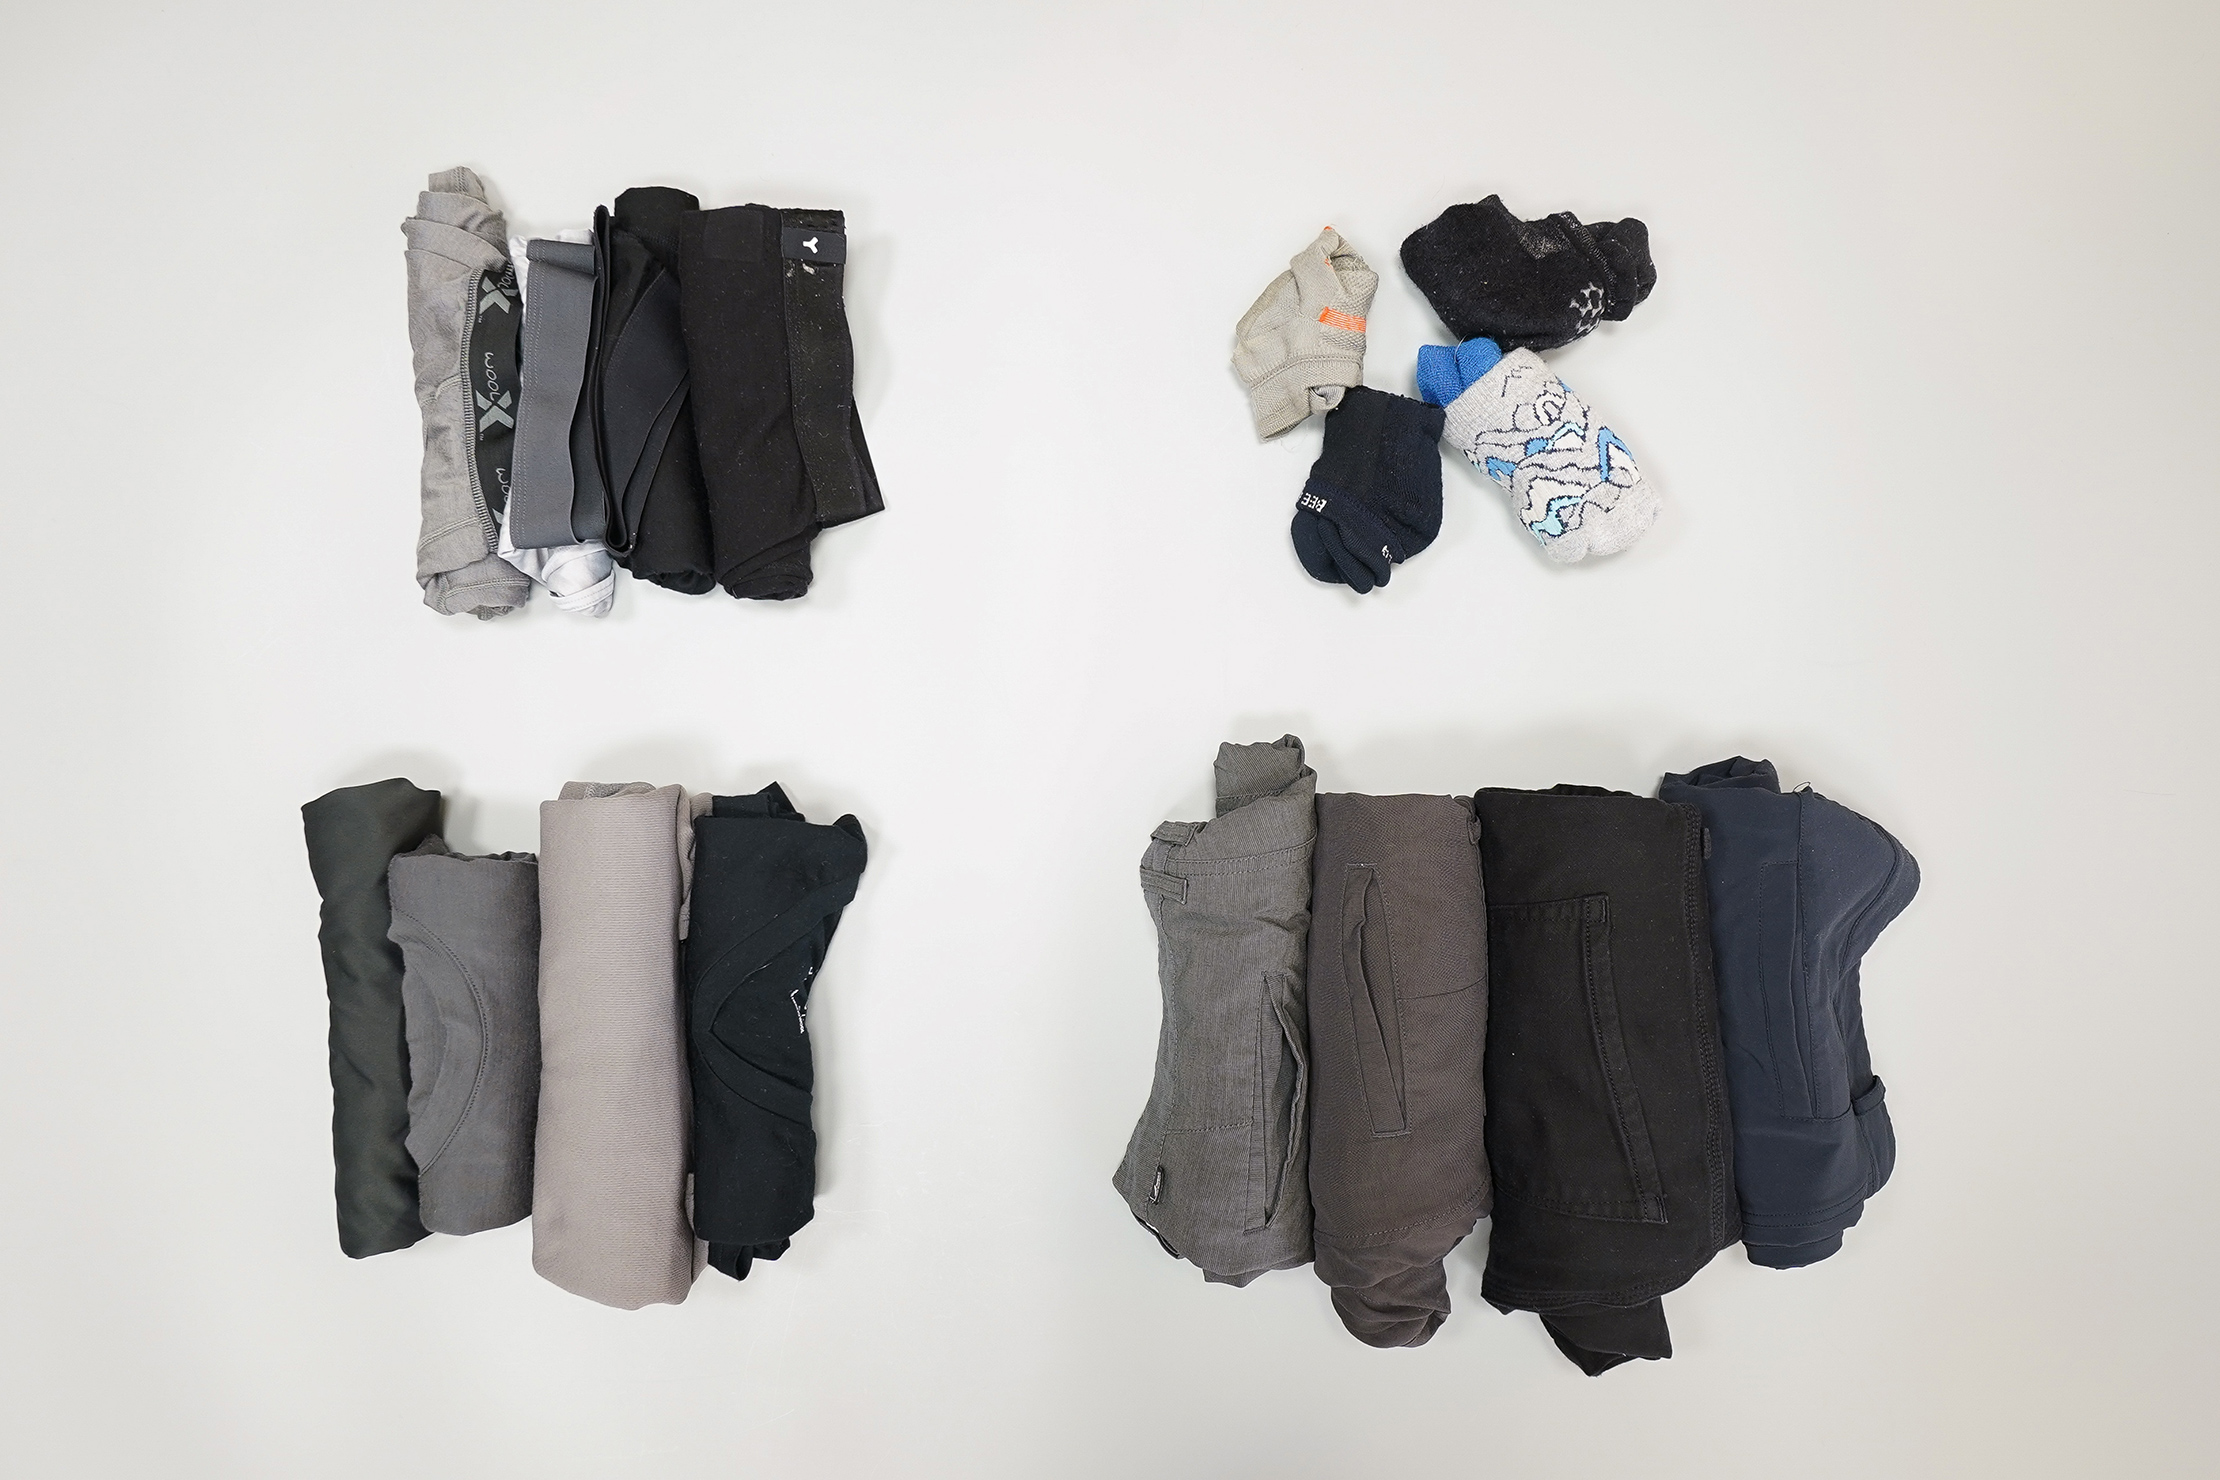 How To Pack a Carry-on Tops and Bottoms By Category